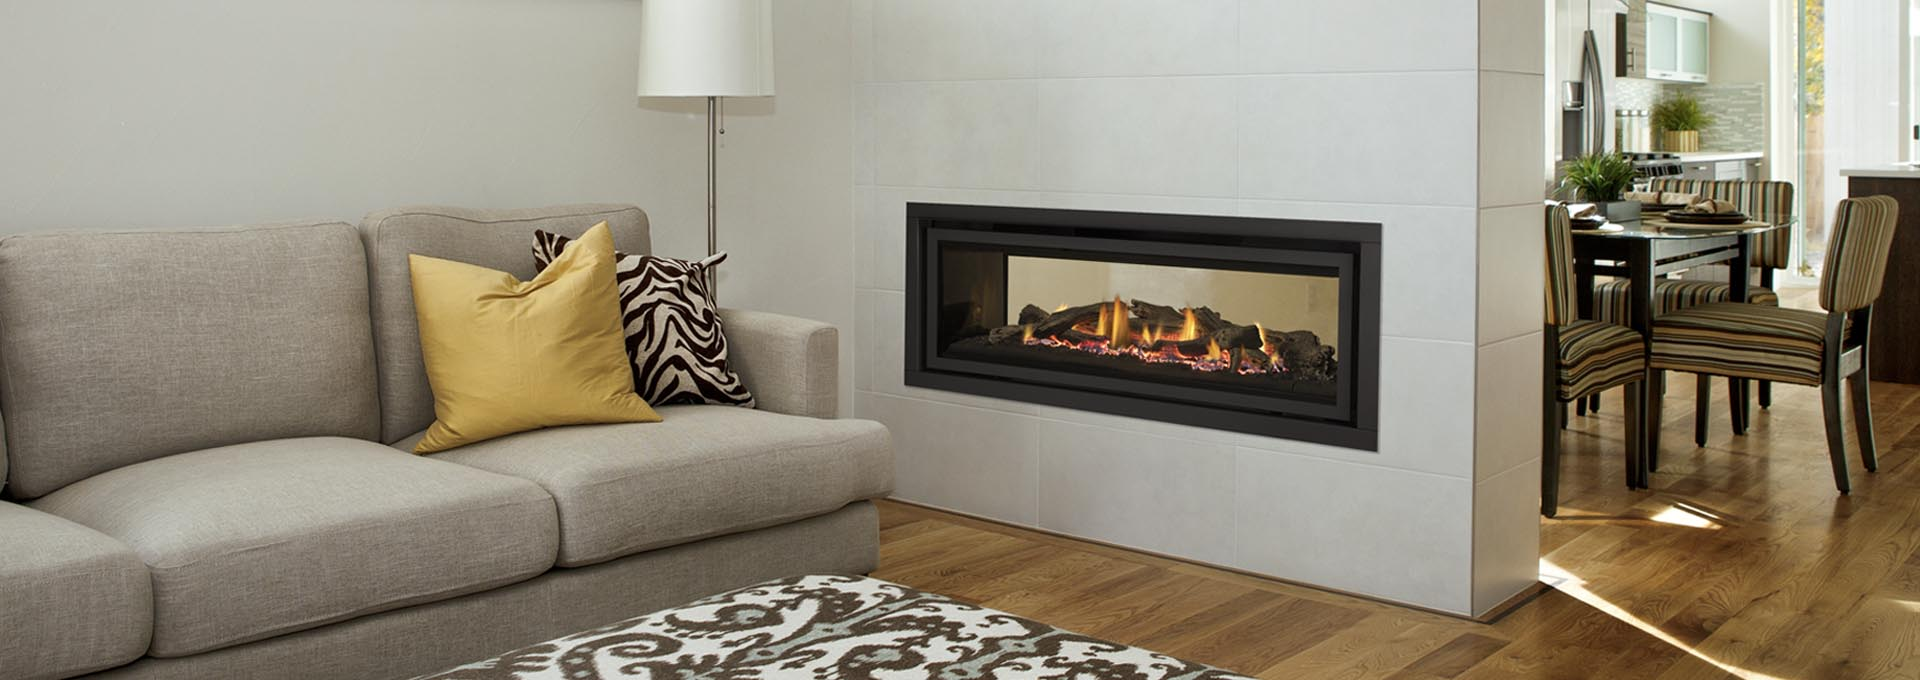 Top tips for servicing your fireplace this summer